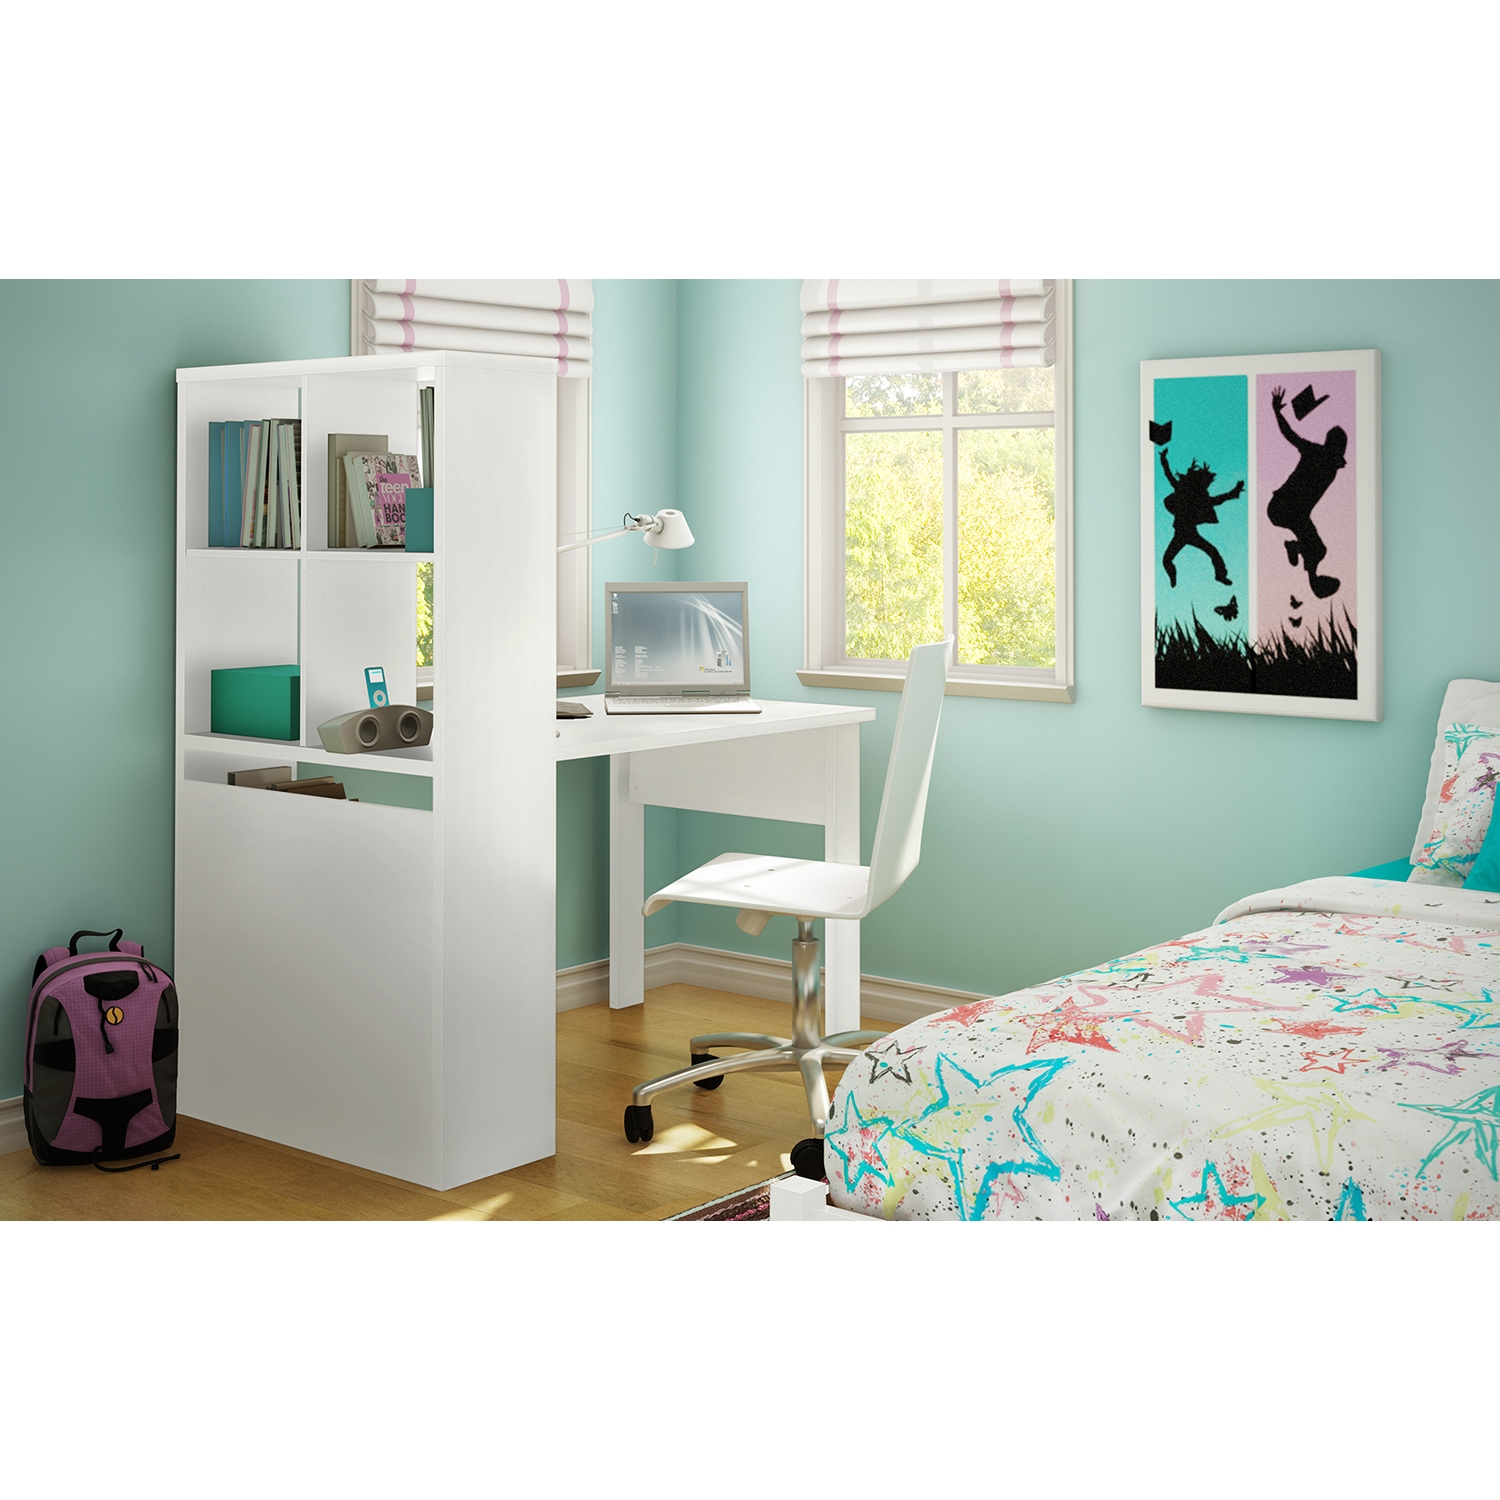 Annexe Craft Table and Storage Unit Combo - Pure White - SS-7250A1